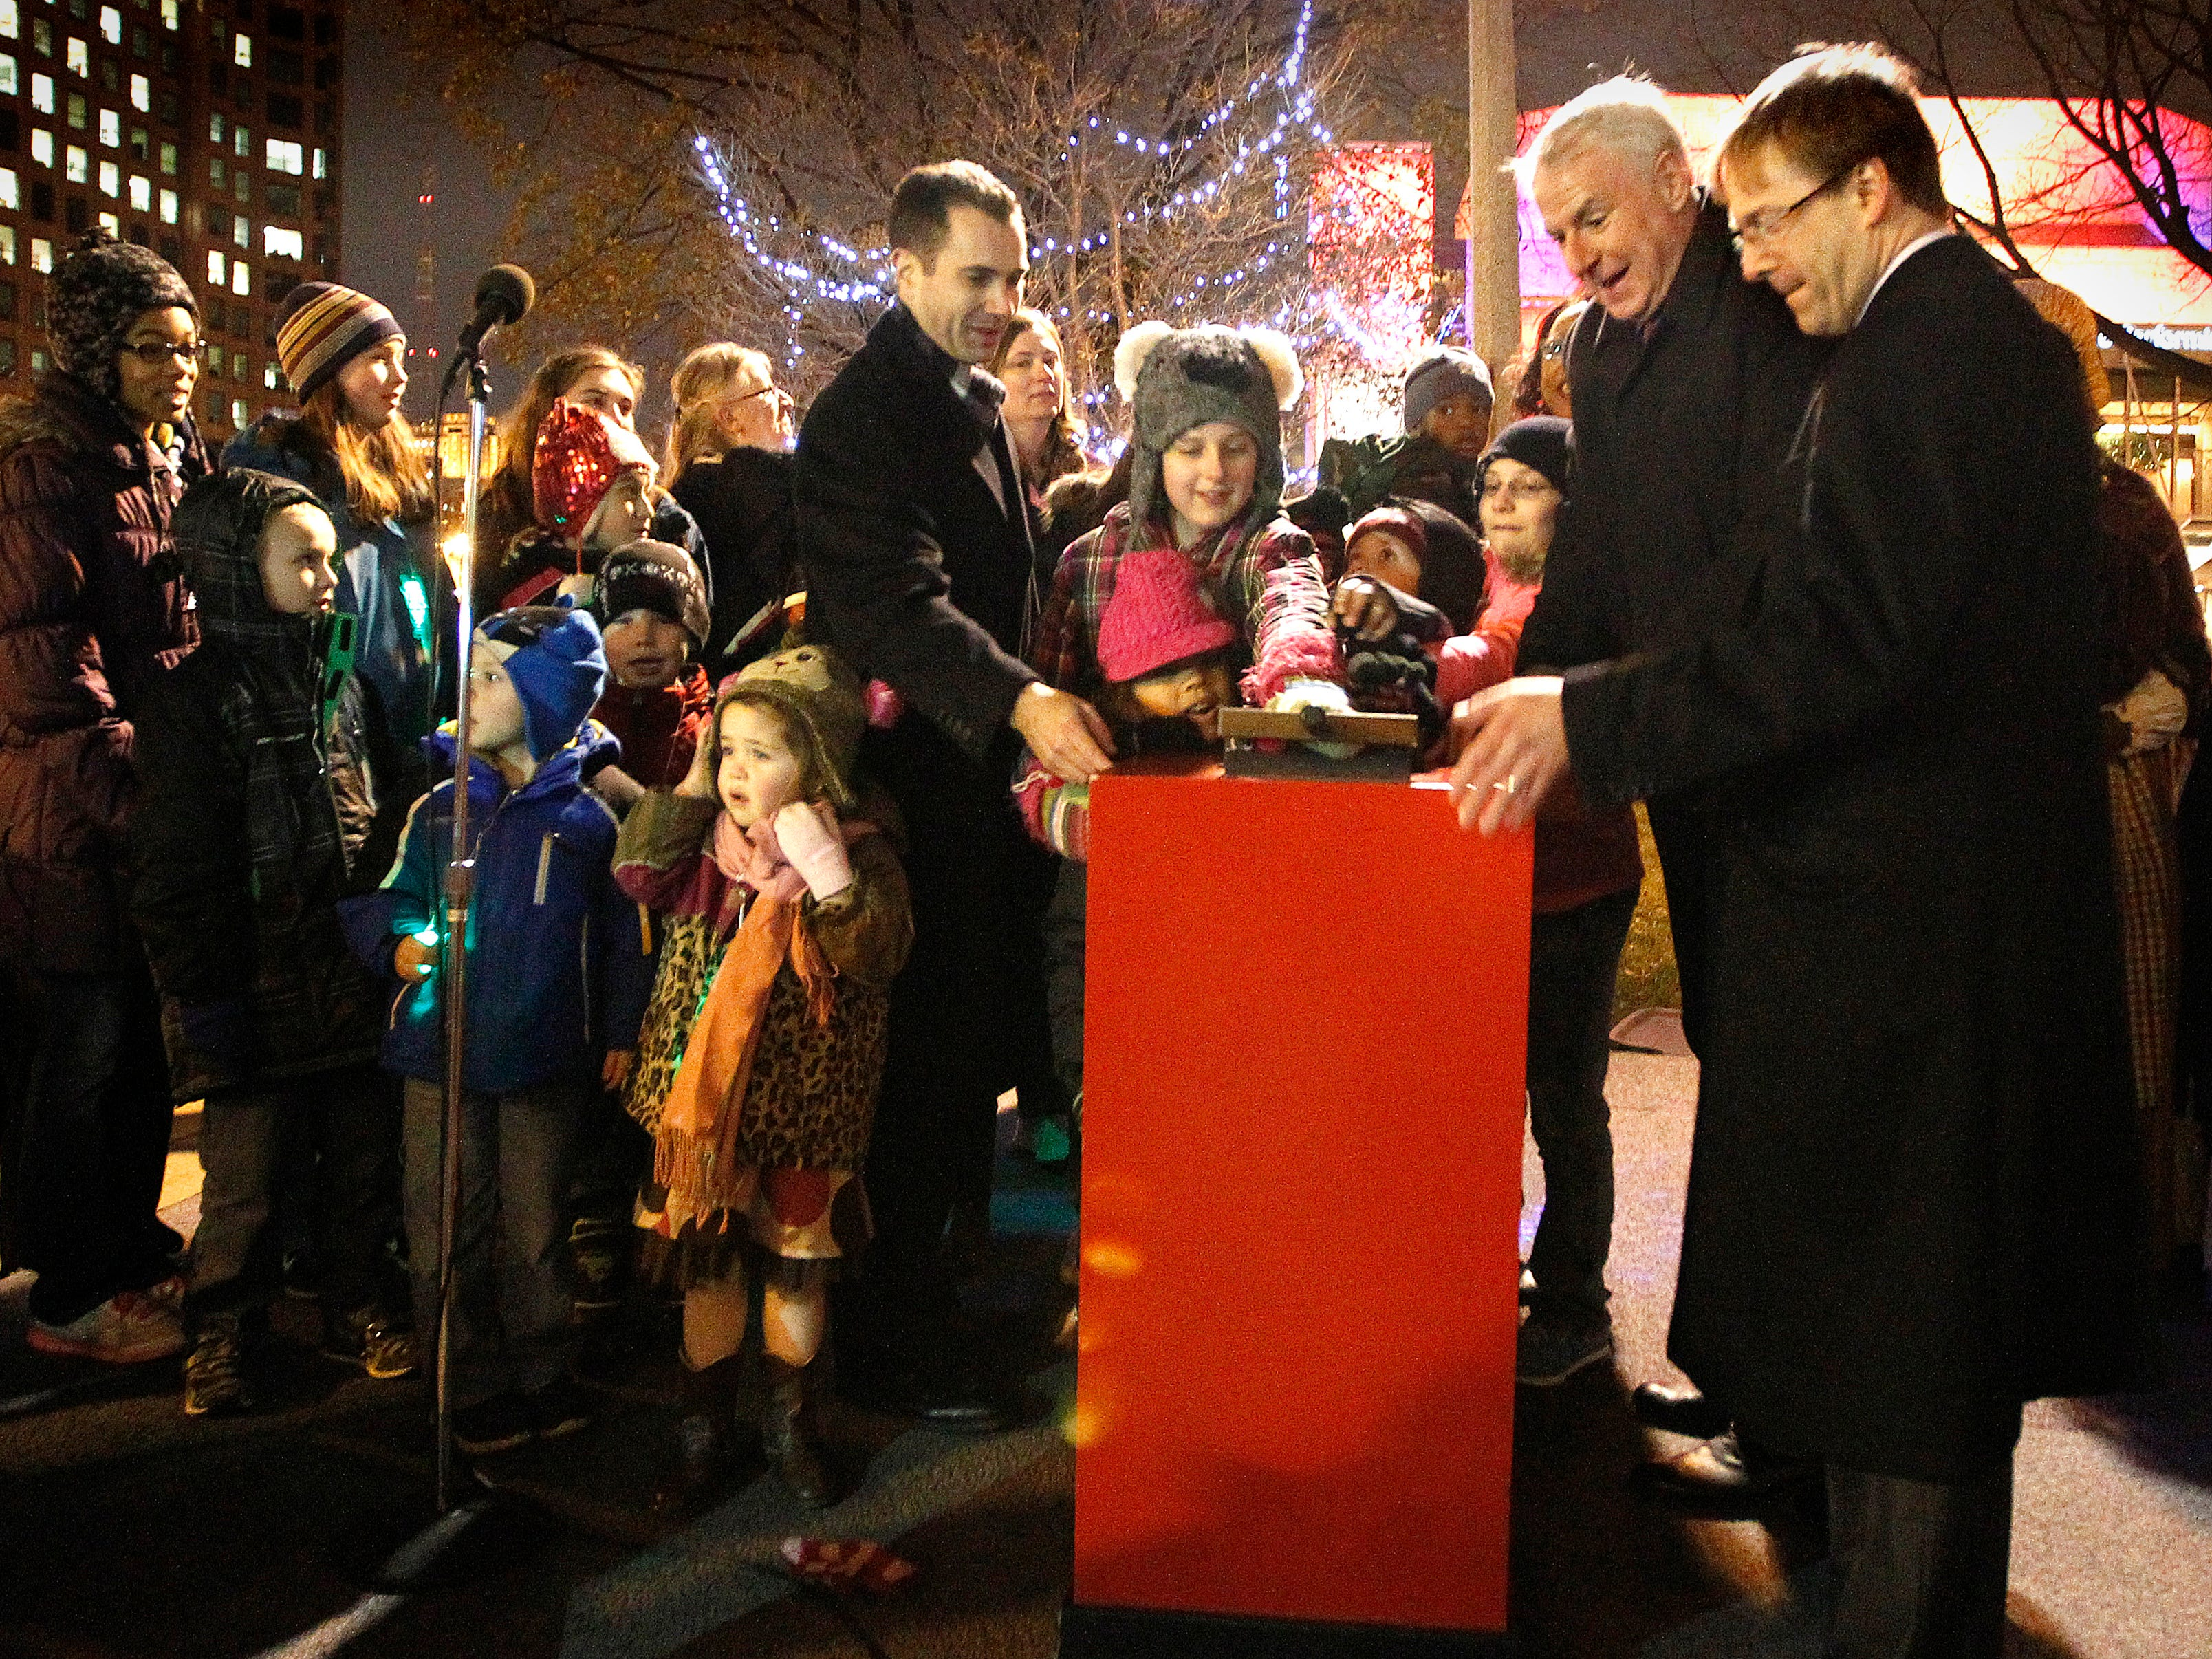 2013: Milwaukee Mayor Tom Barrett and County Executive Chris Abele throw the switch to light up Milwaukee's 100th year Christmas Tree celebration in Red Arrow Park. This years 40 foot Colorado Blue Spruce was donated by Loving Shepherd Lutheran Church and School.